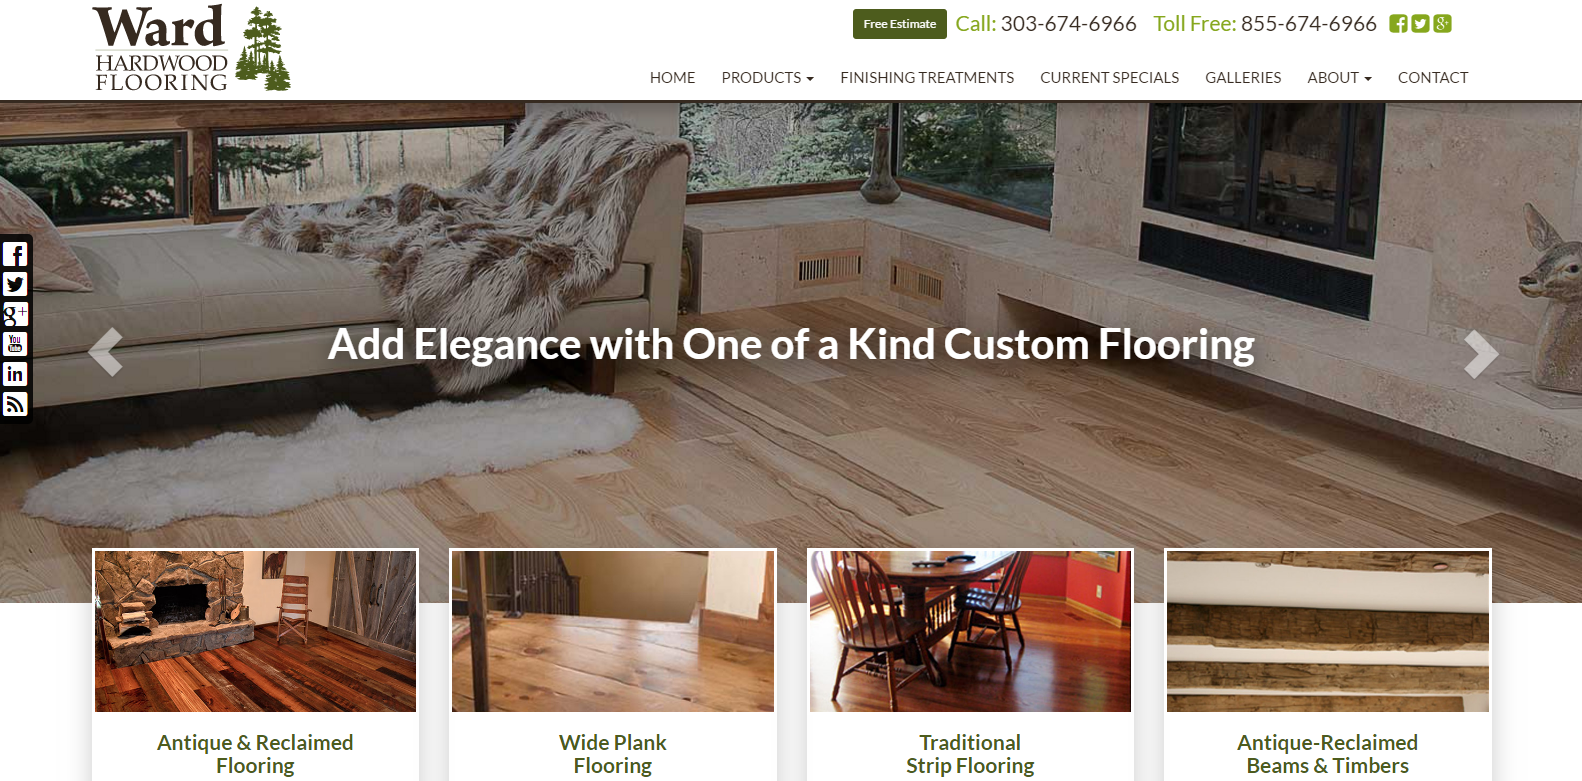 New Upgrade Launched: Ward Hardwood Flooring